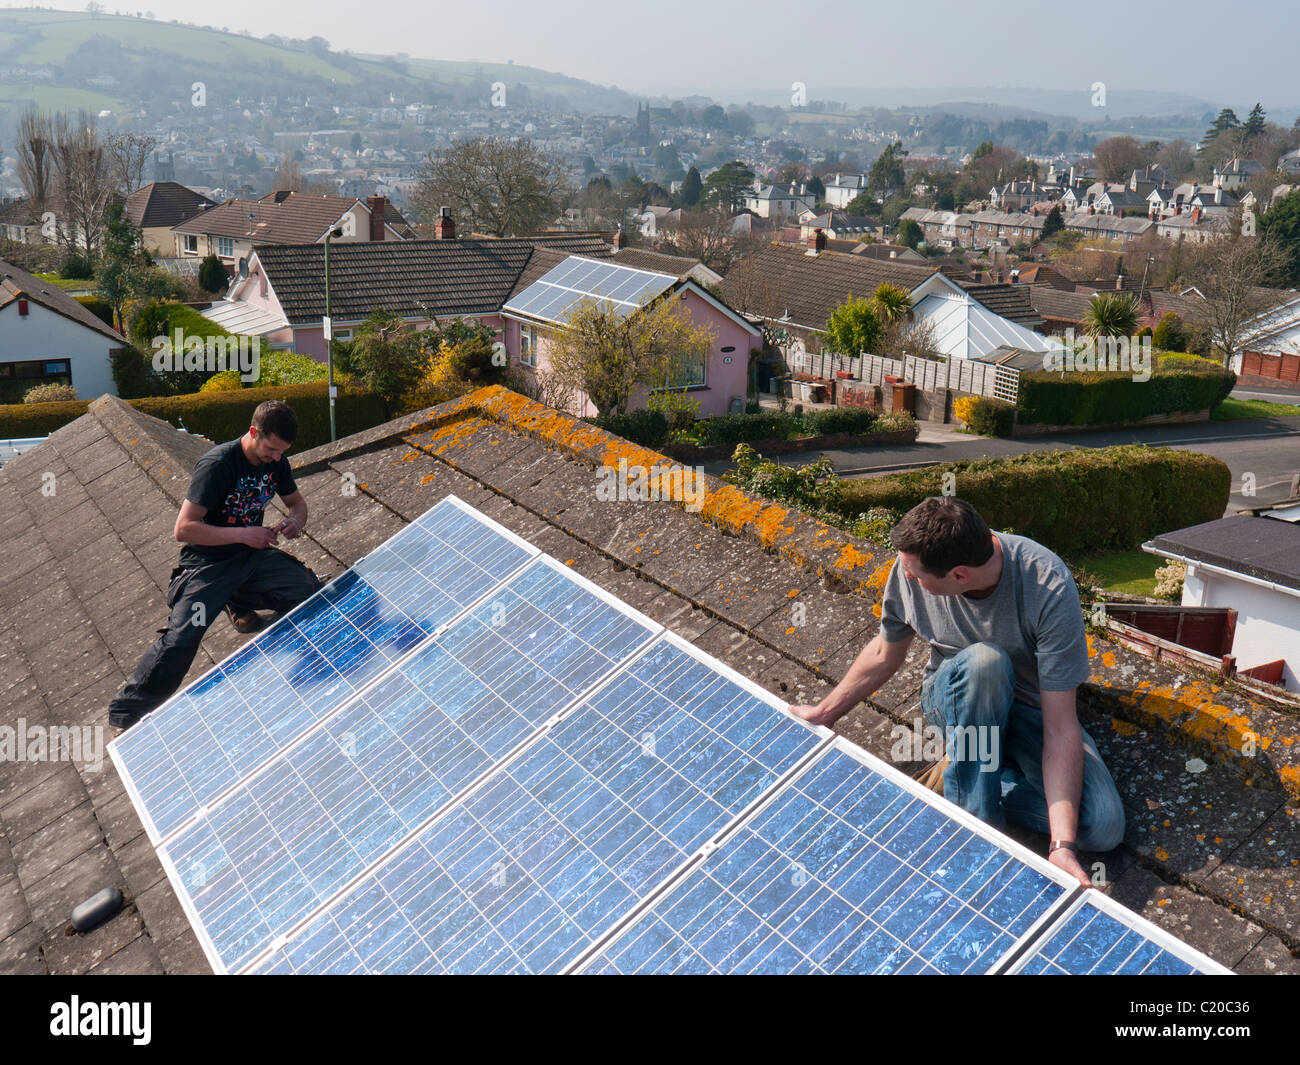 Photovoltaic solar panels being fitted to a roof in Totnes Devon UK - Stock Image